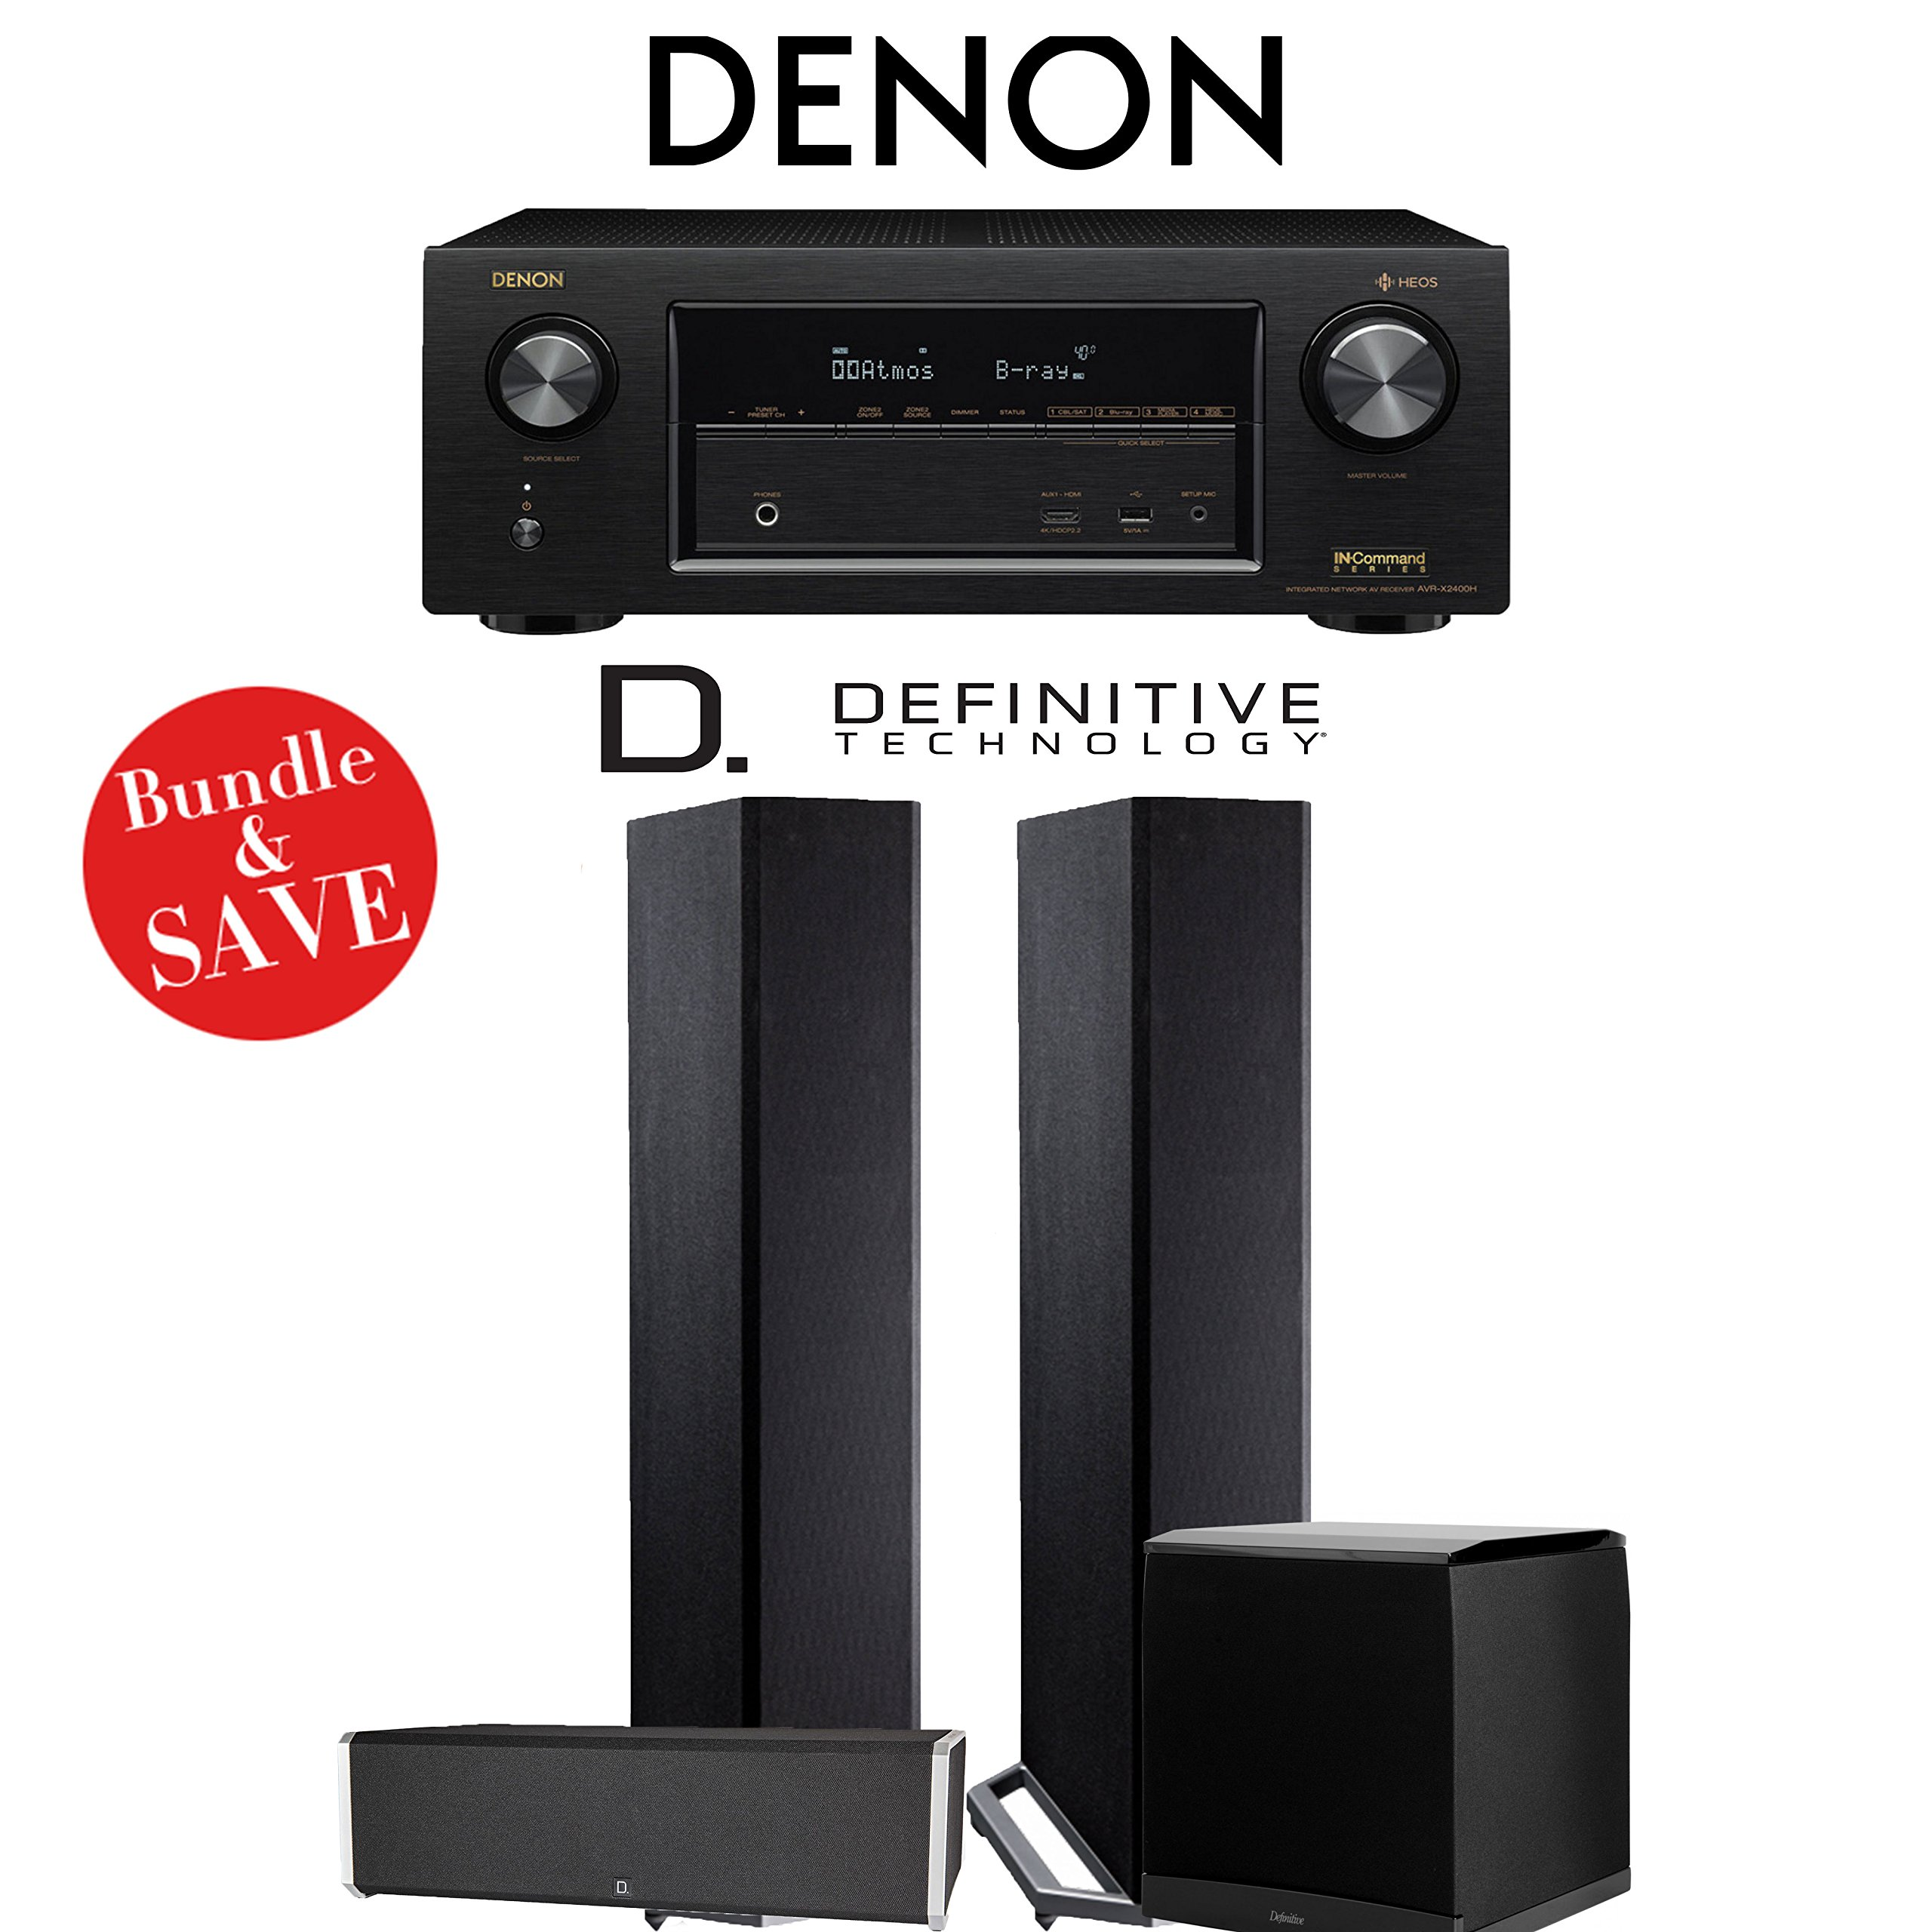 Denon AVRX2400H 7.2 Channel Network A/V Receiver + Definitive Technology BP9020 + Definitive Technology CS9040 + Definitive Technology SuperCube4000 - 3.1-Ch Home Theater Package